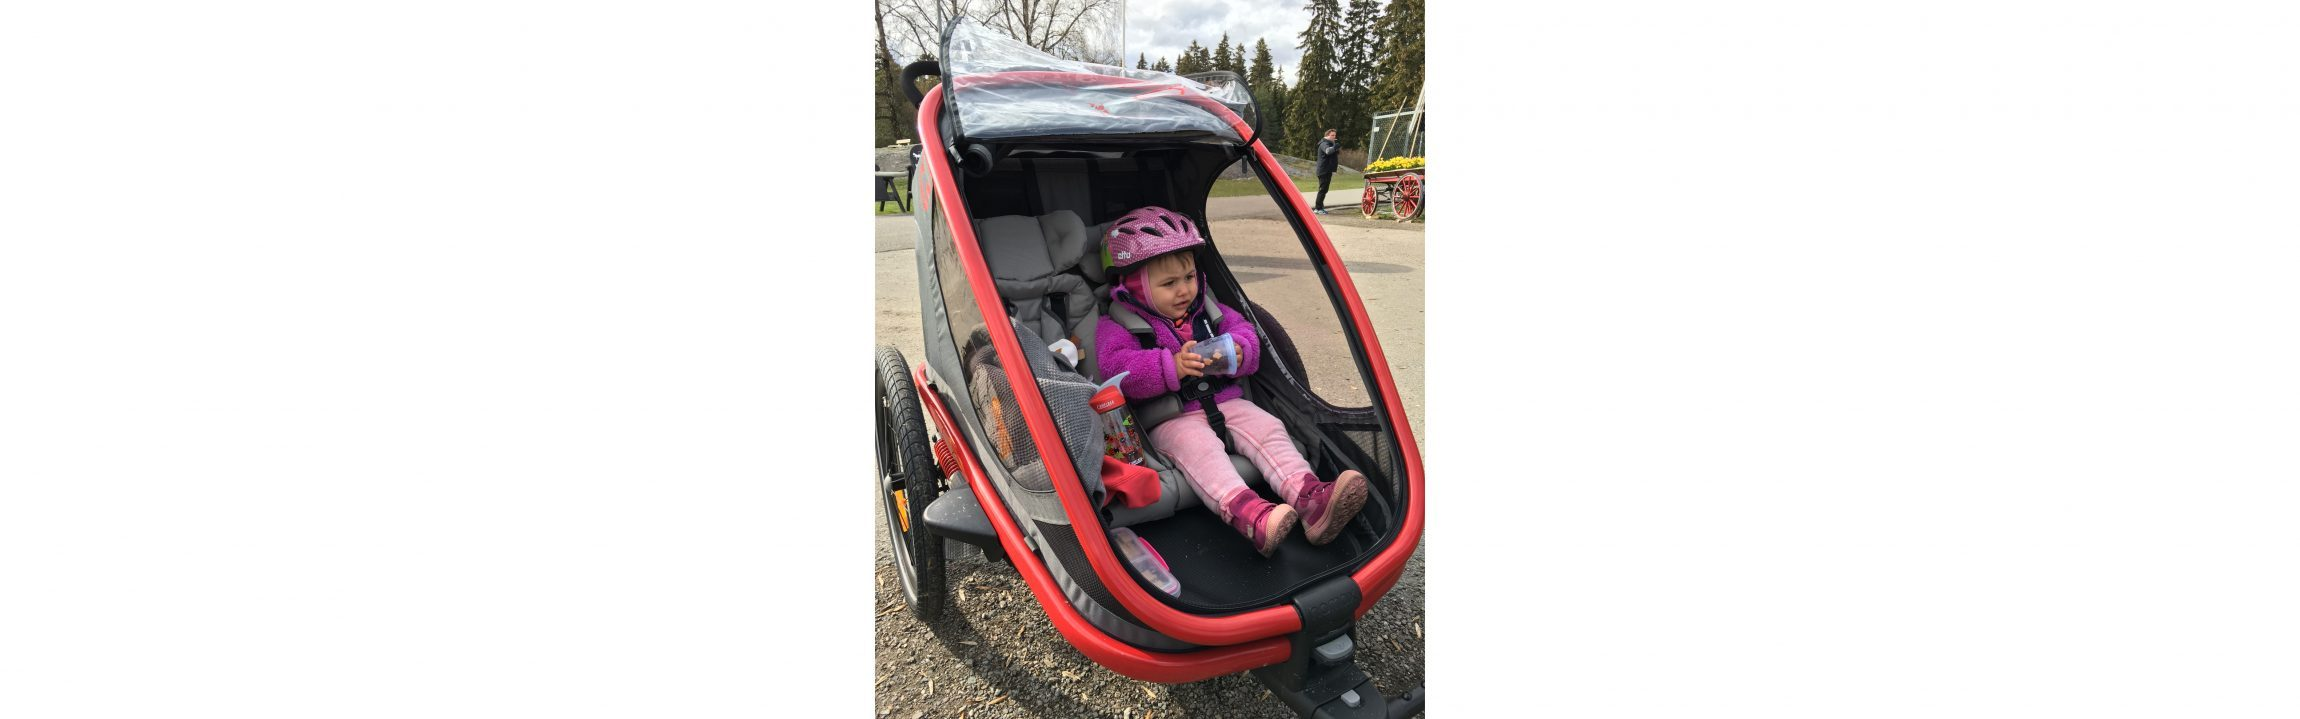 Hamax Outback bicycle trailer and stroller